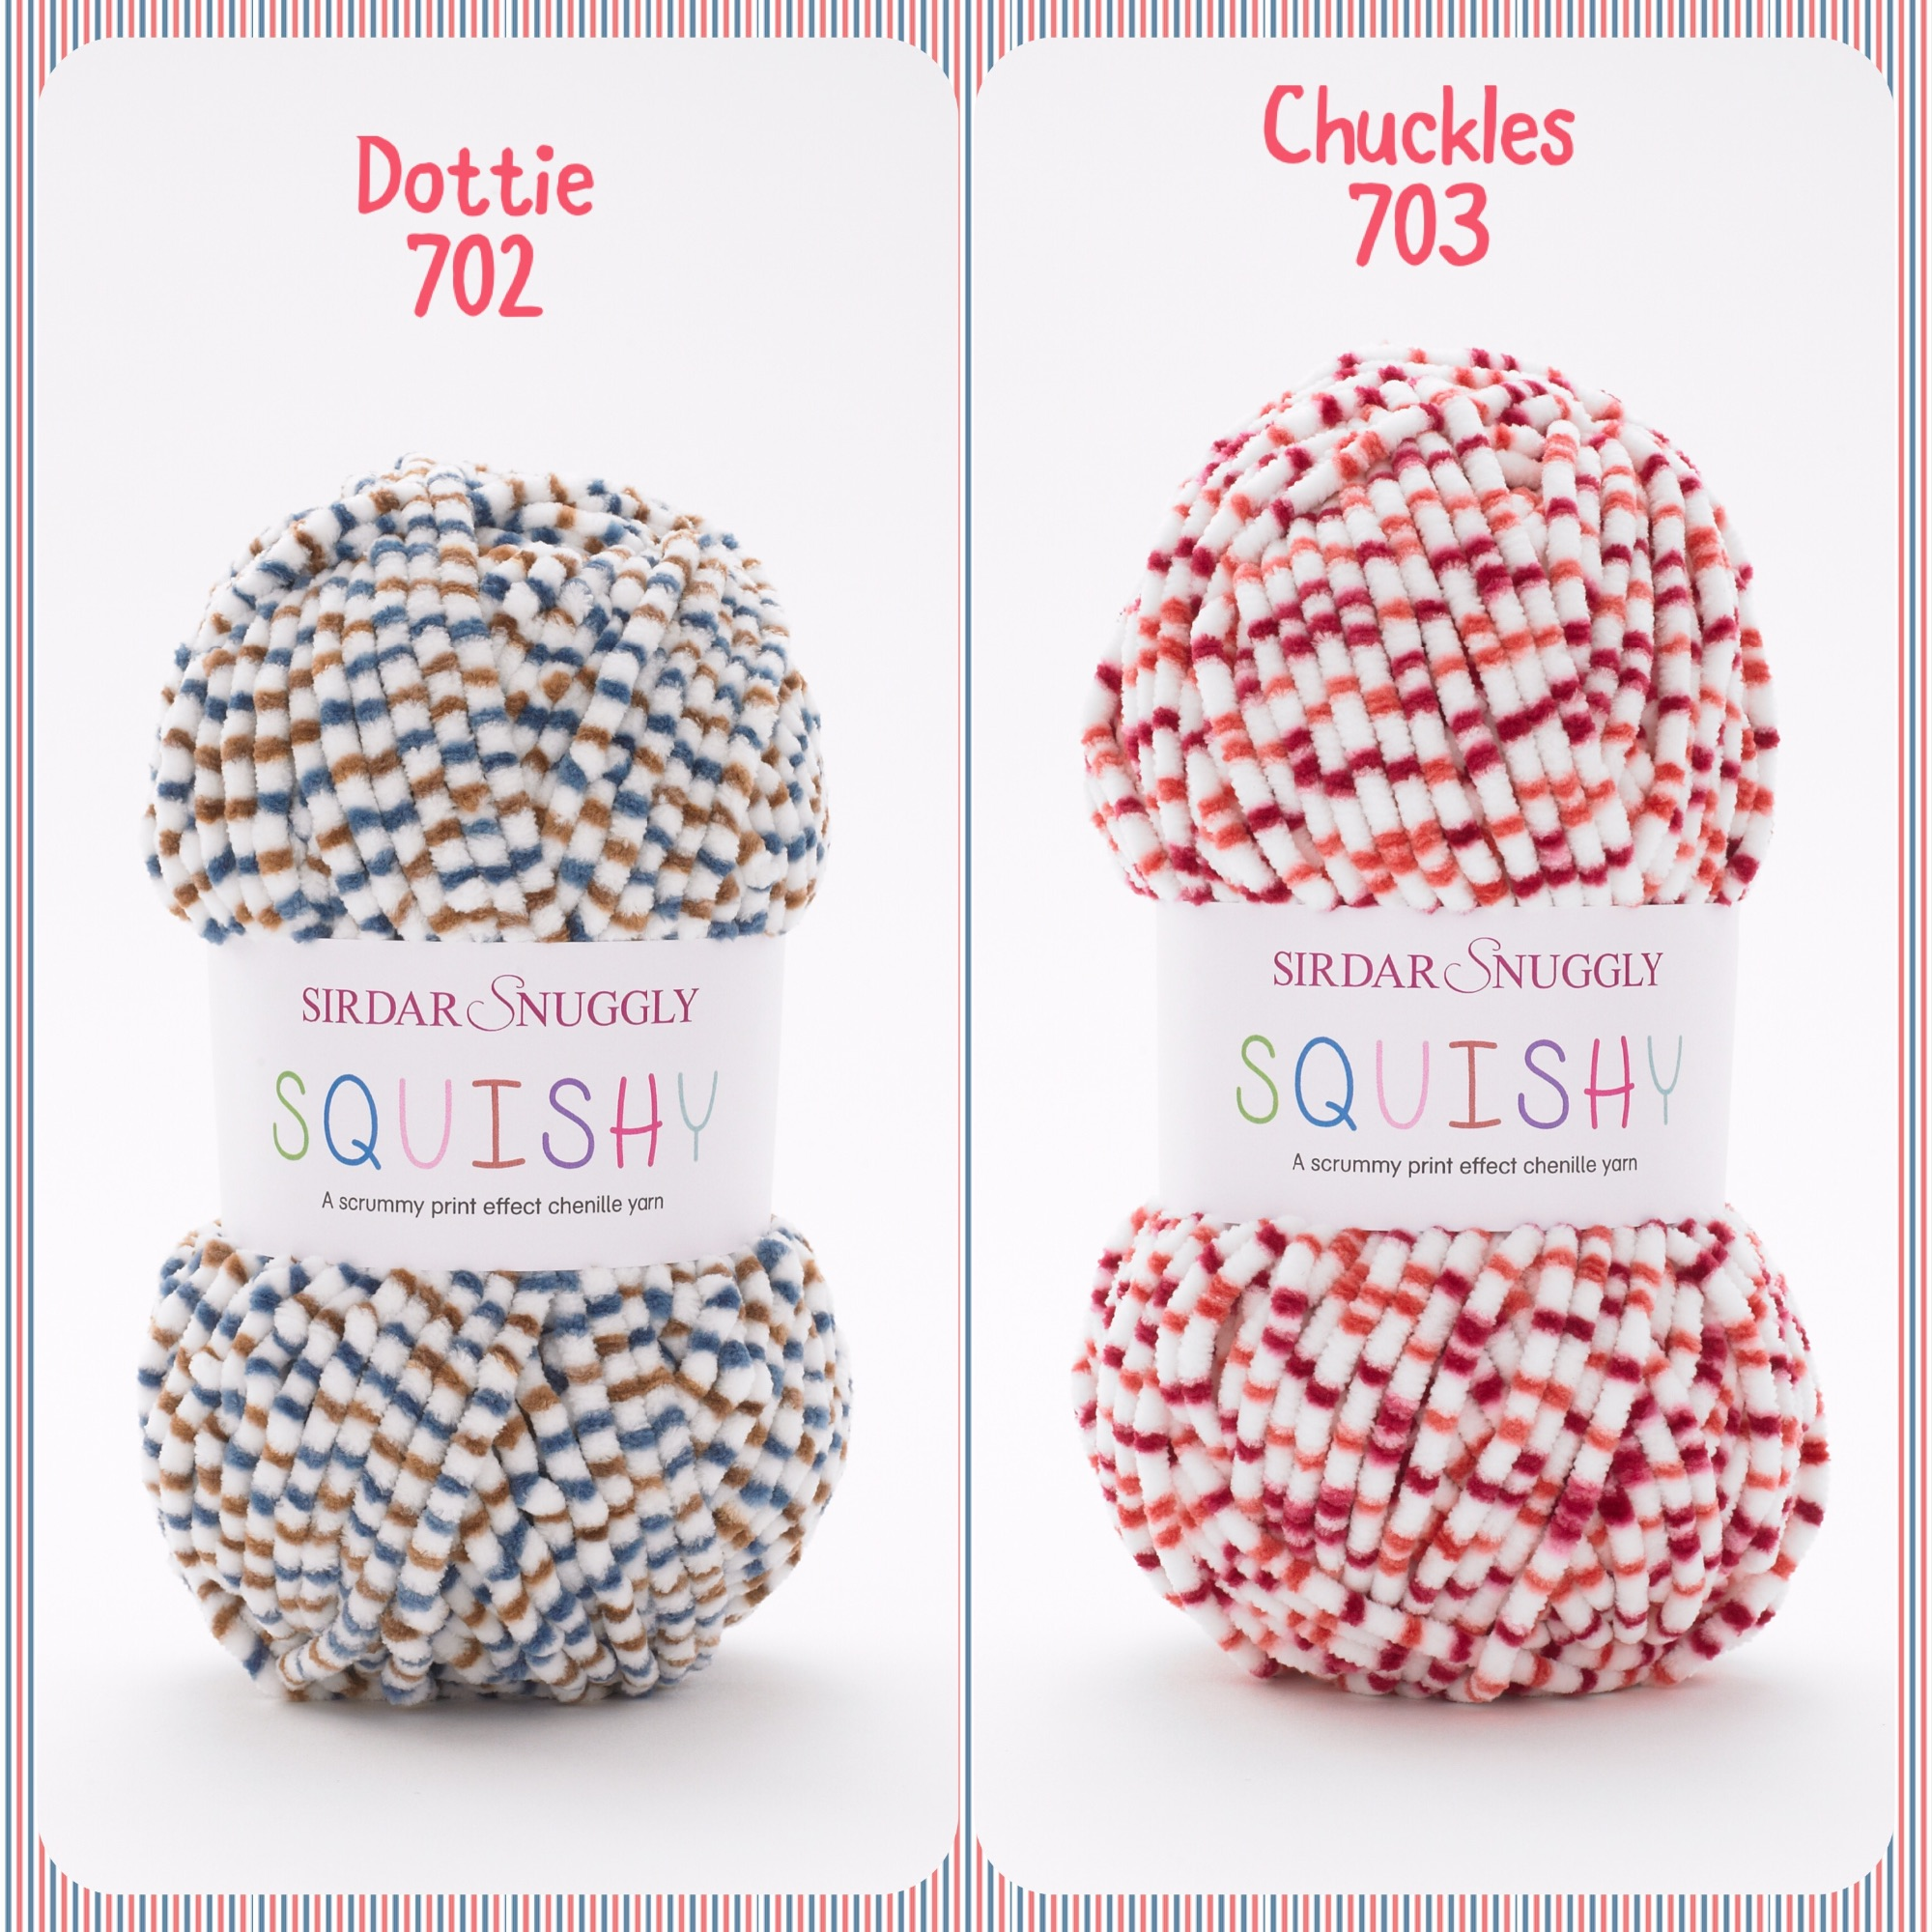 Sirdar snuggly squishy baby chunky yarns Dottie chuckles colours